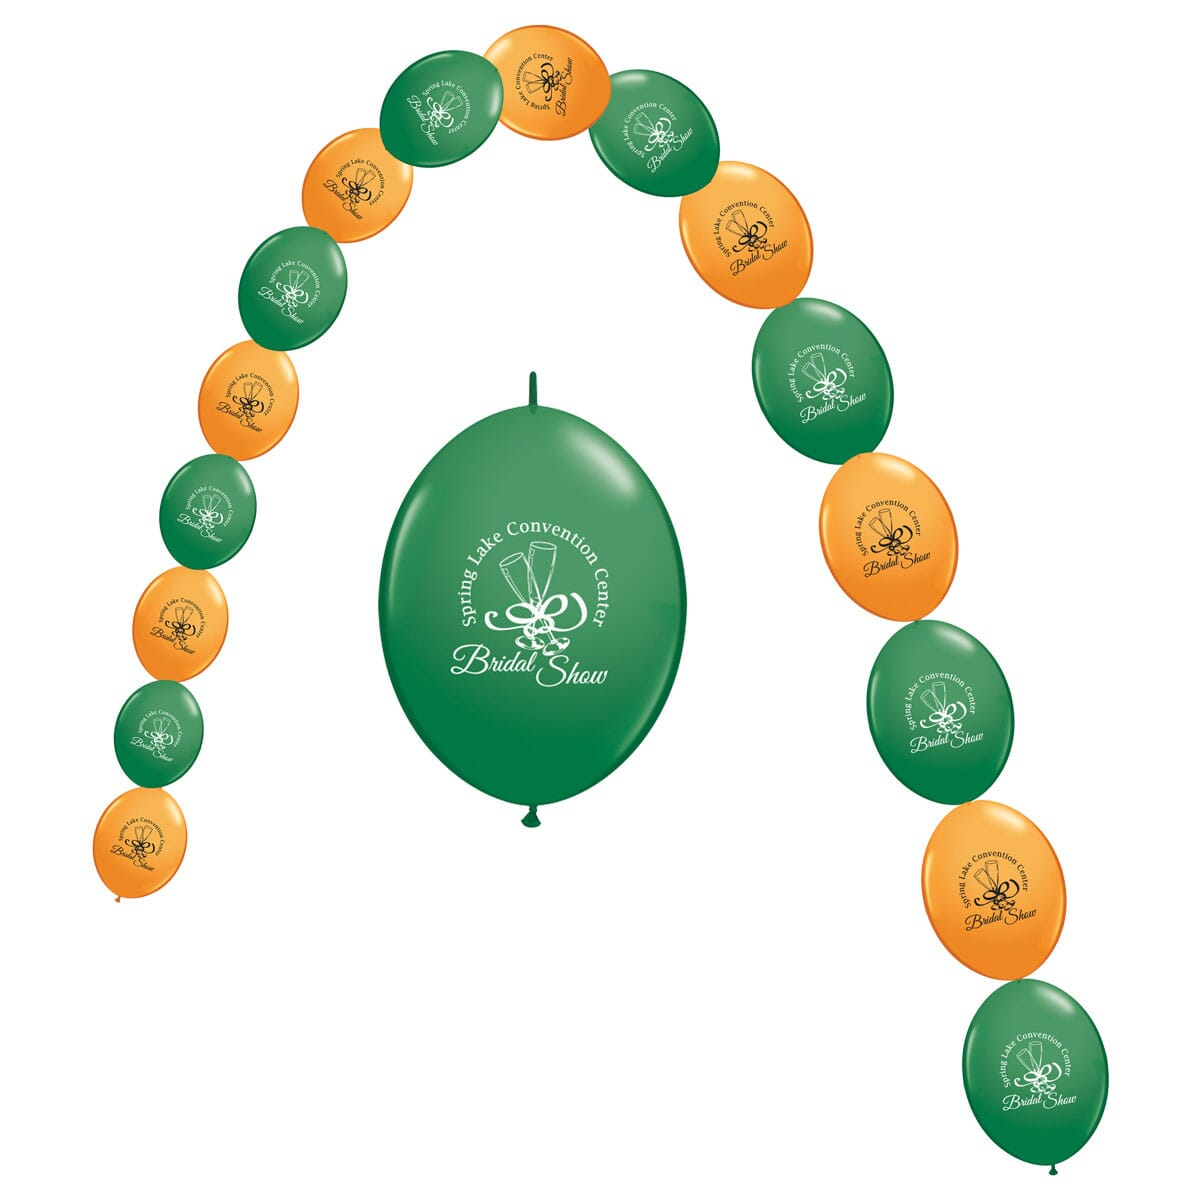 Green and orange balloons decorated with black and white logos, linked together to form a balloon arch